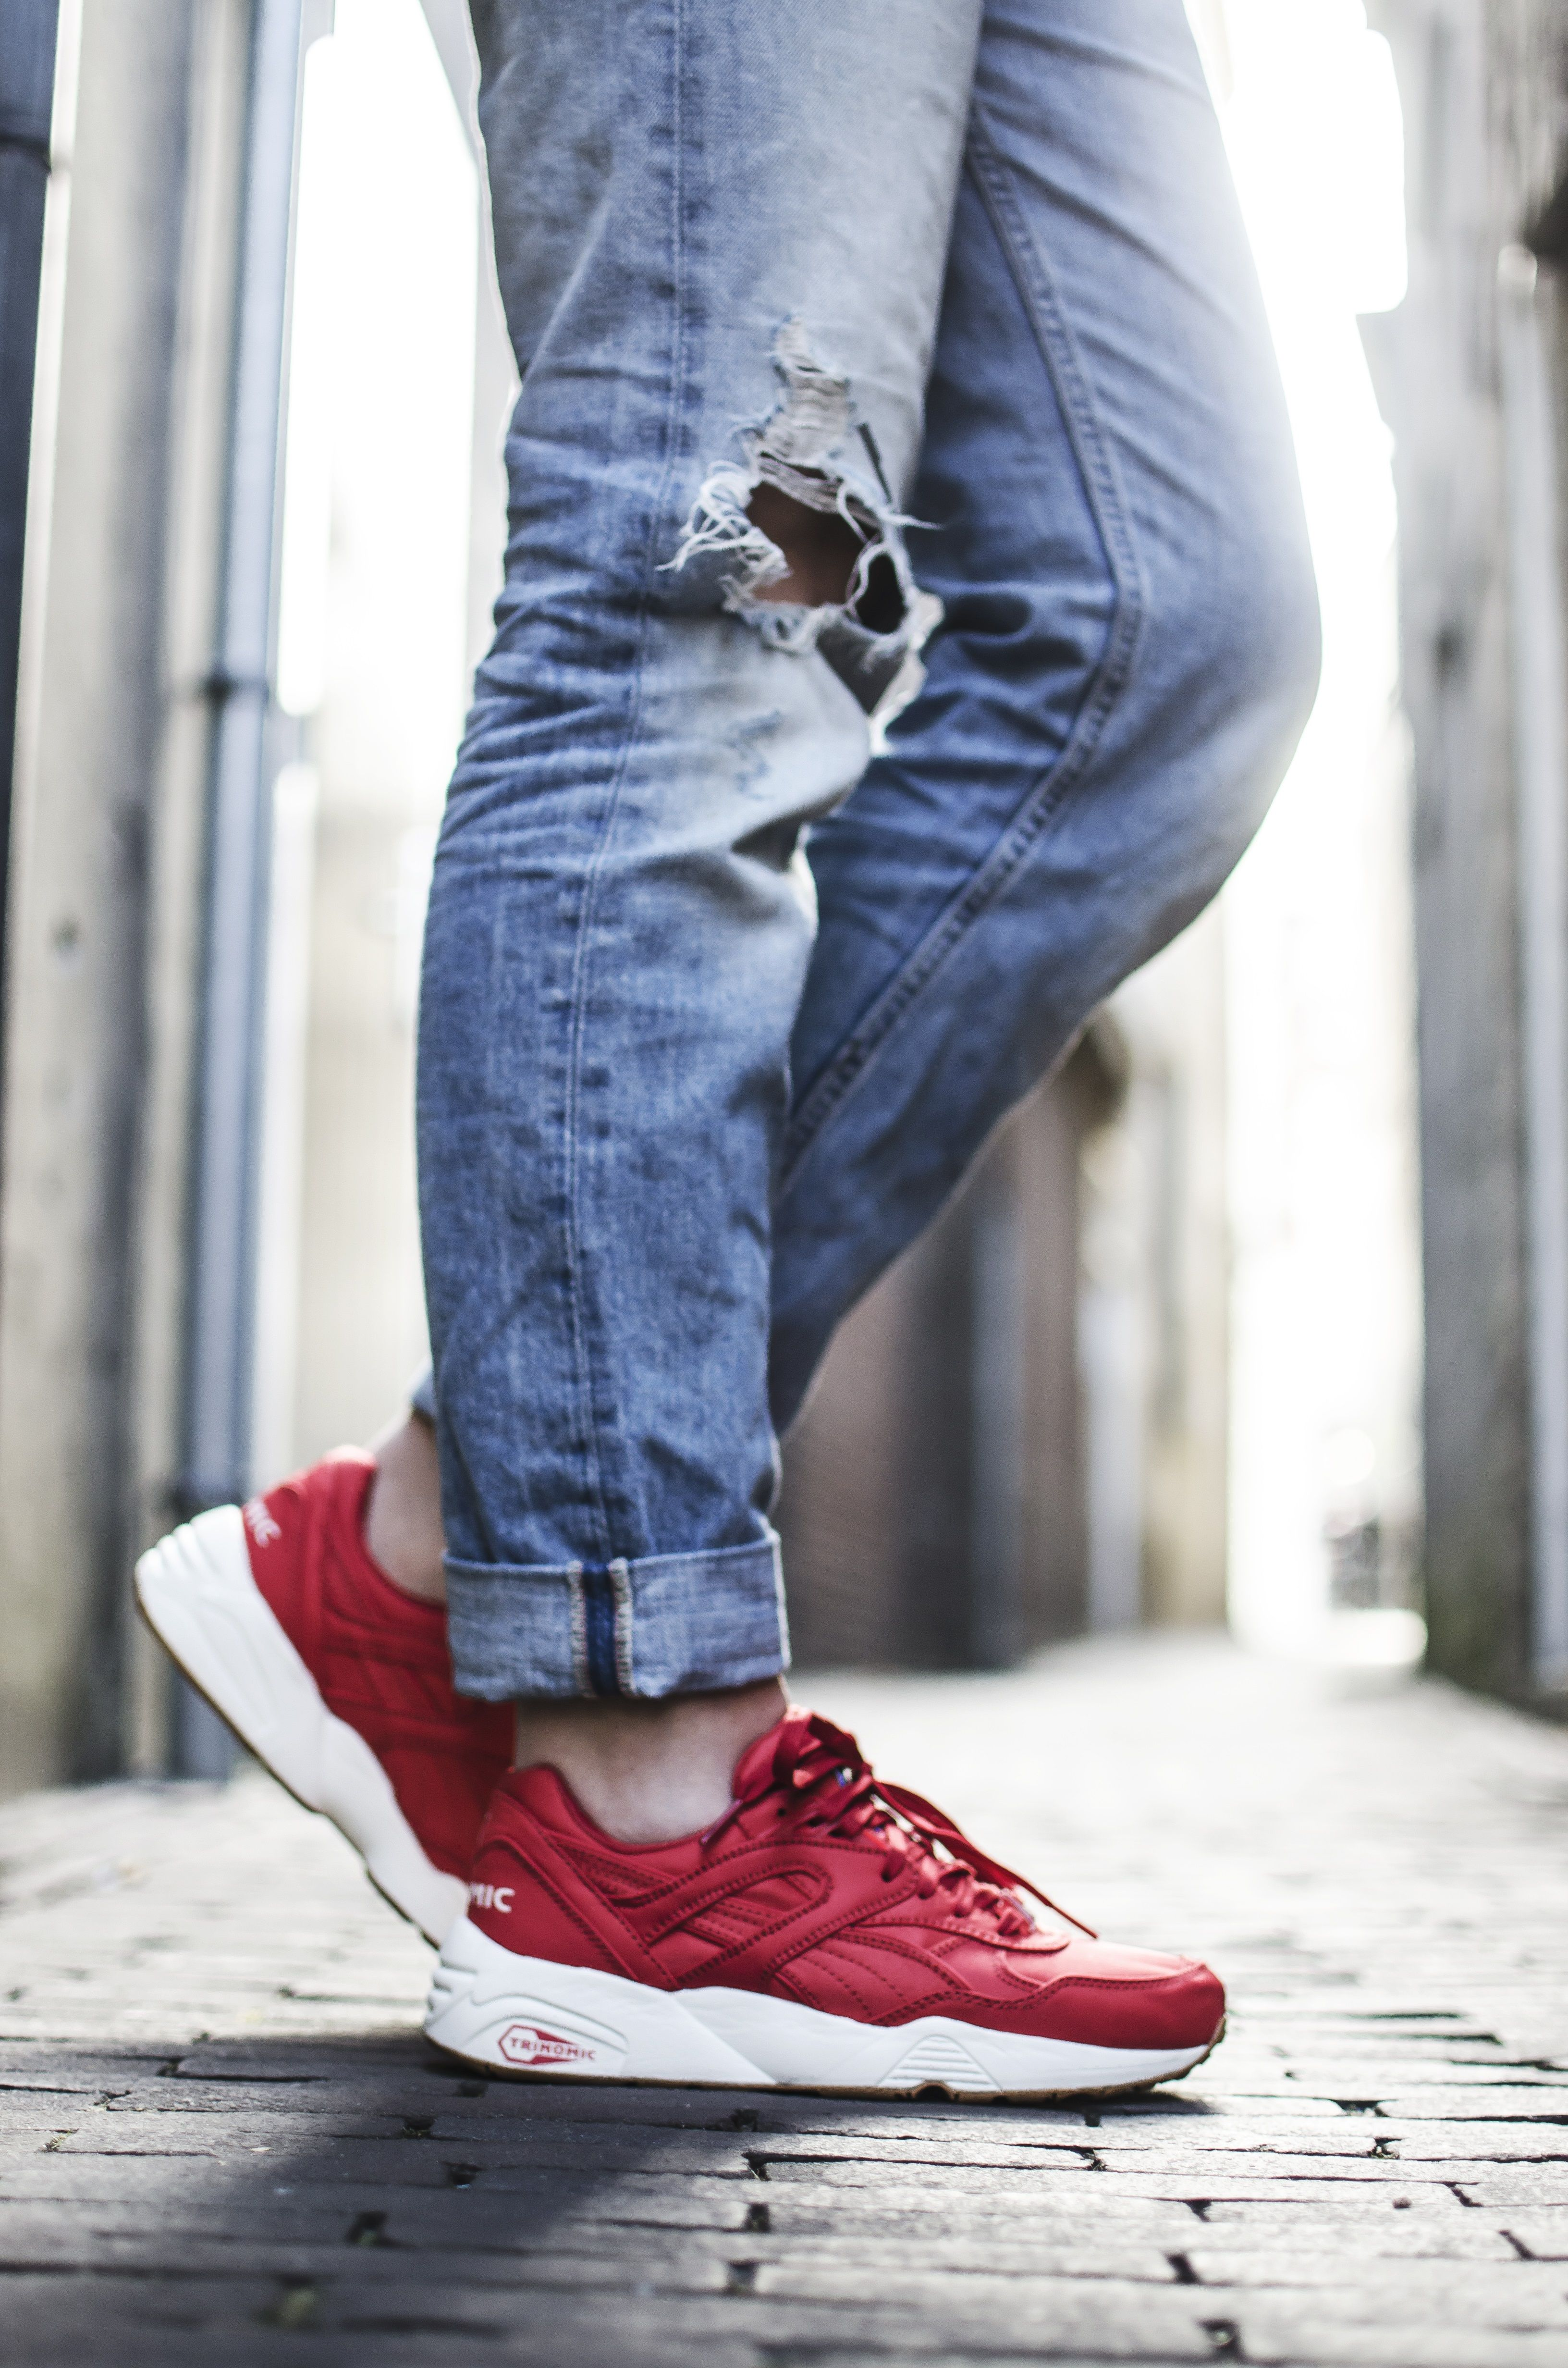 Puma Trinomic R698 red http://www.pro-shoes.nl/puma/trinomic #sneakers #woman #sneakergirl